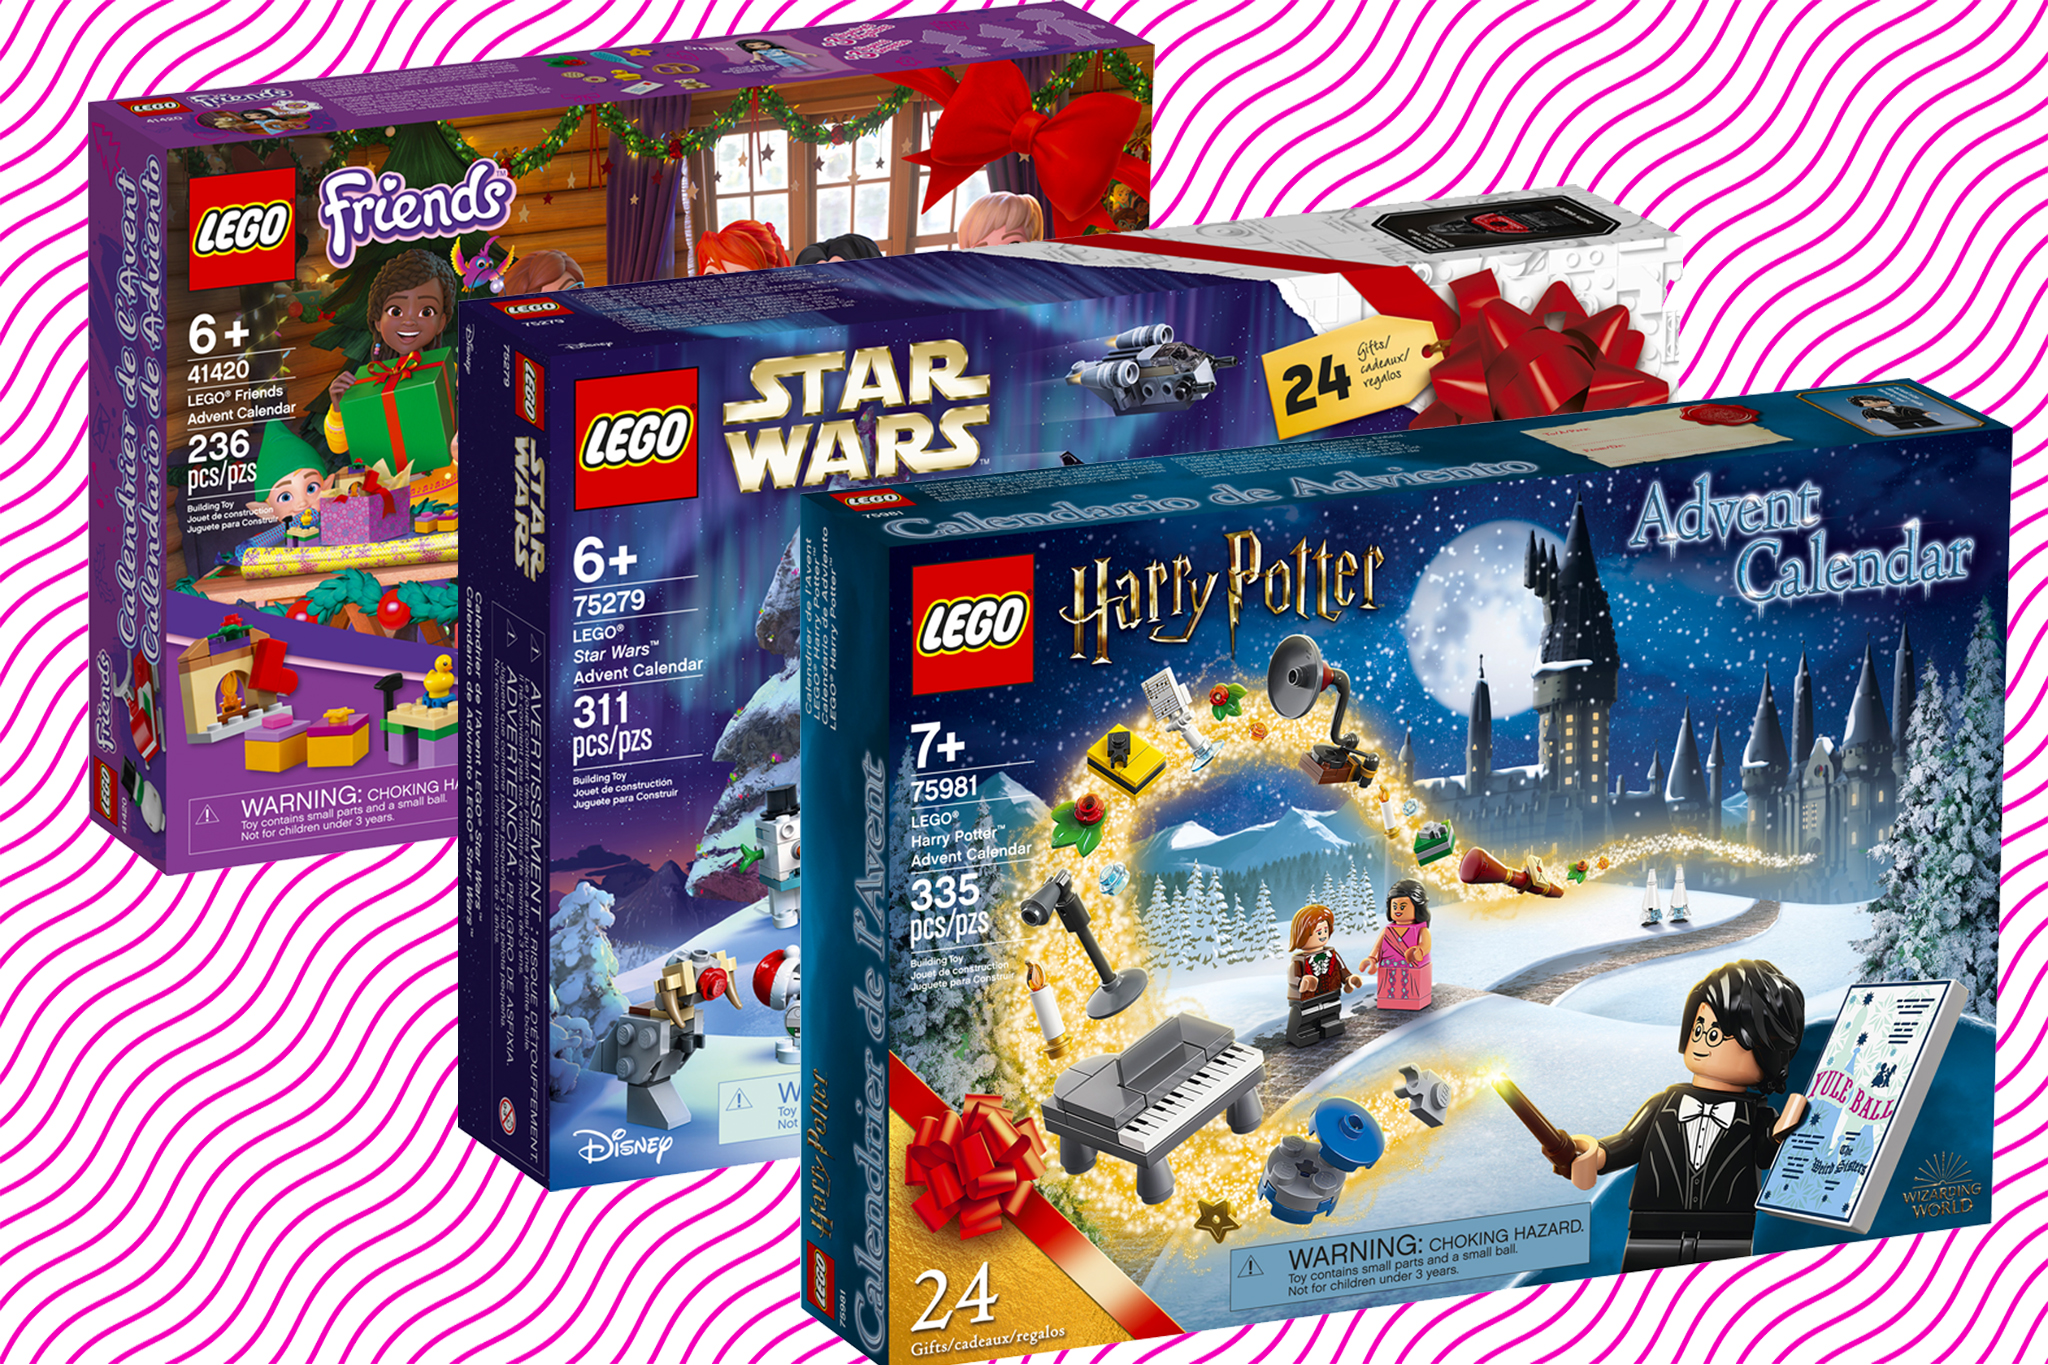 LEGO has 4 advent calendars and 3 of them are super cool